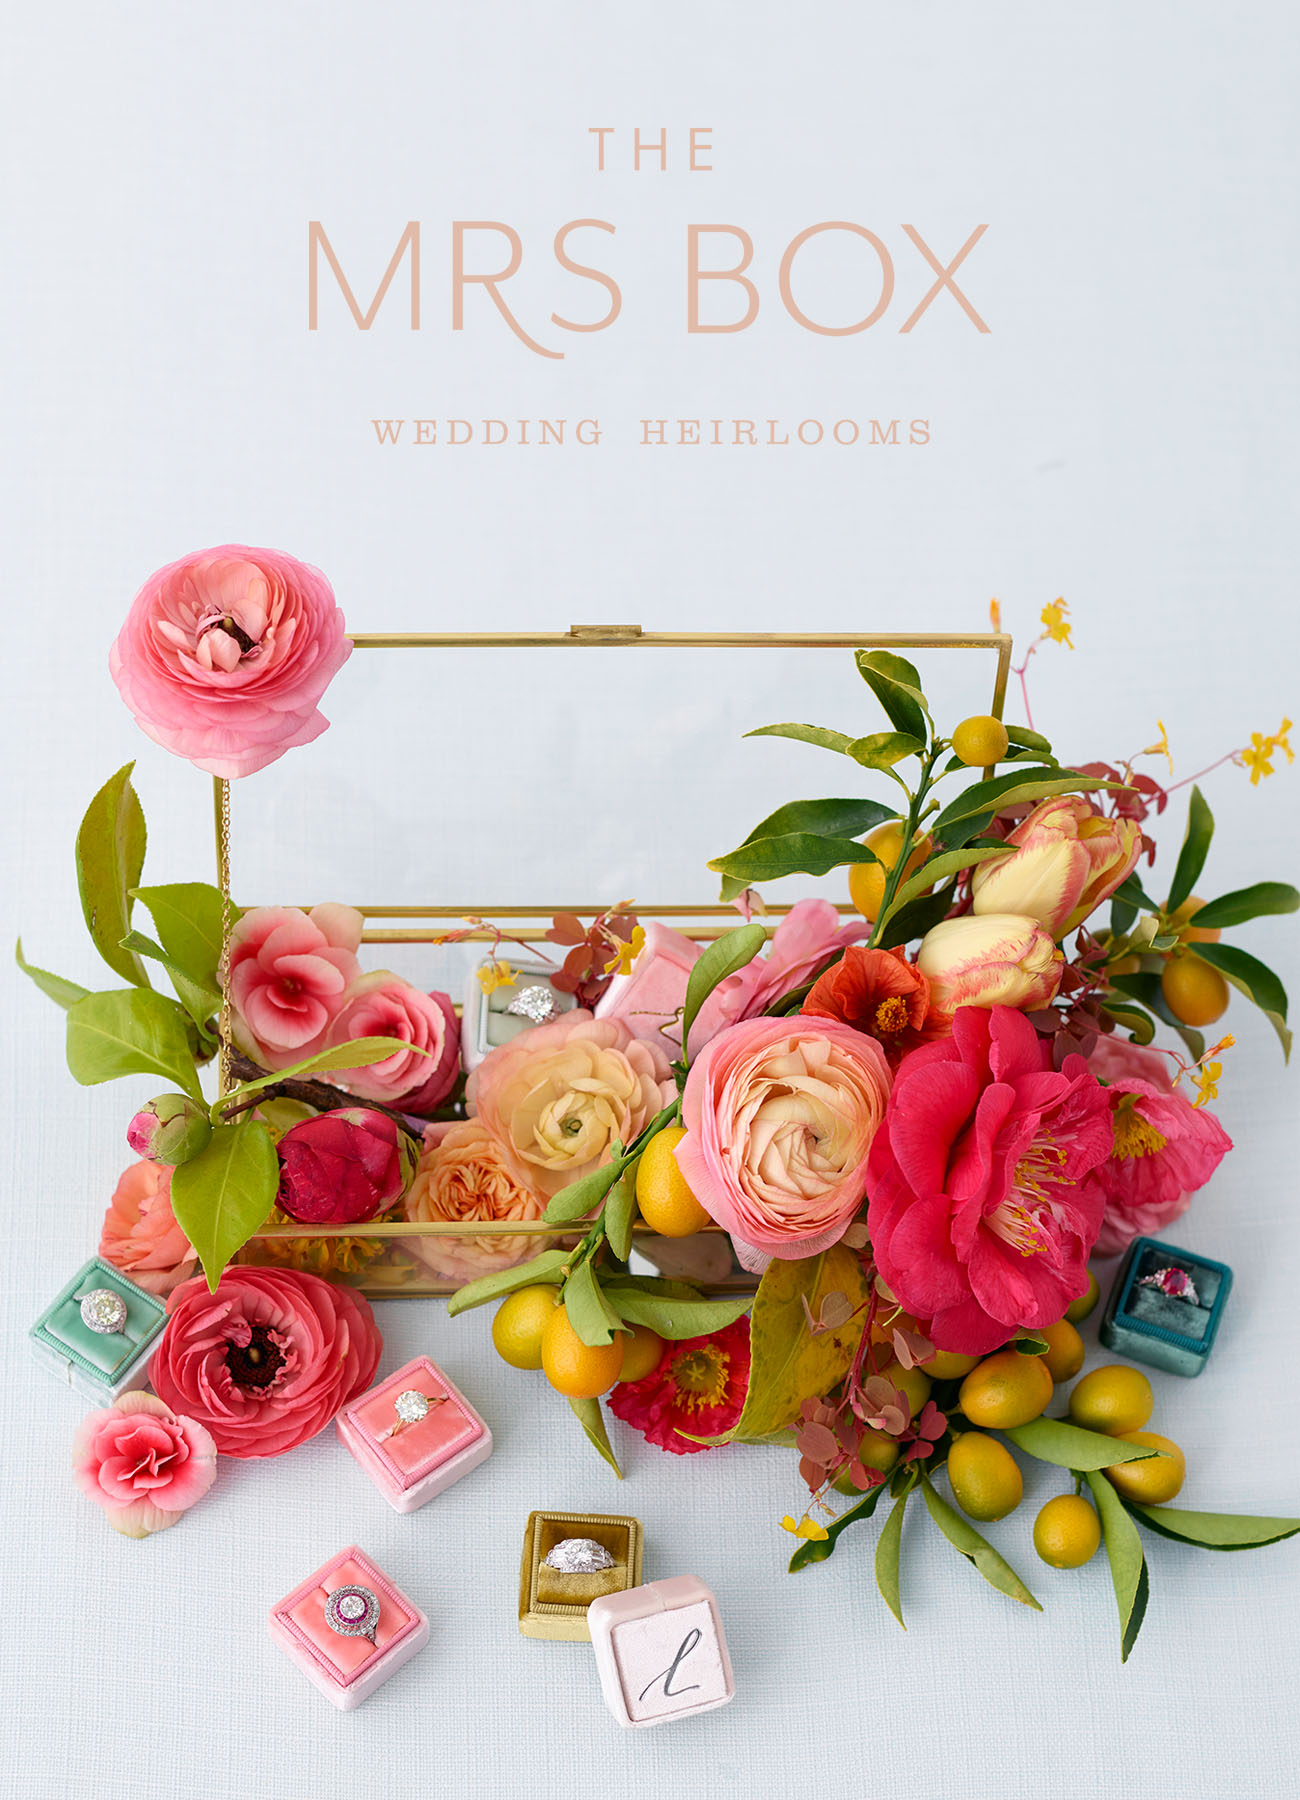 The Mrs Box